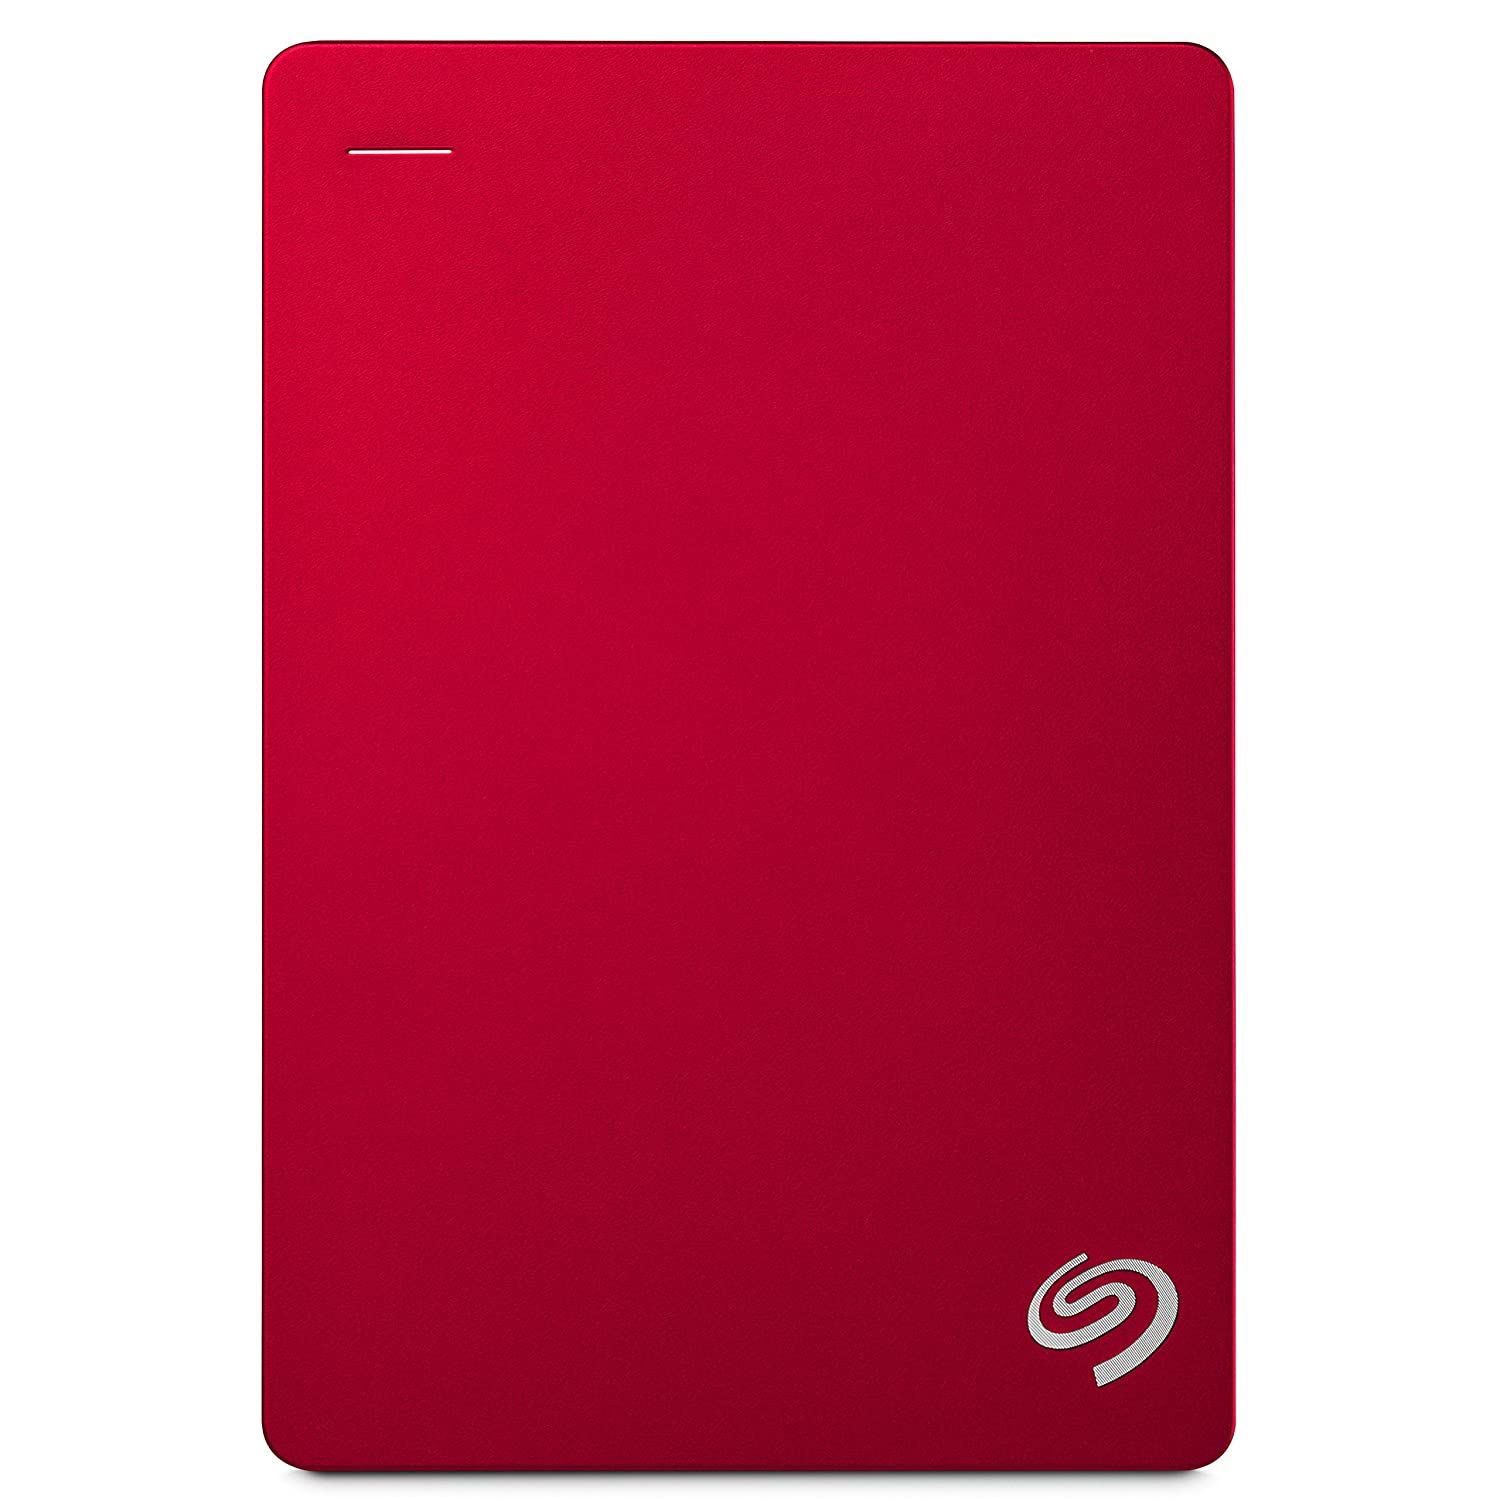 Seagate 4TB Backup Plus (Red) USB 3.0 External Hard Drive for PC/Mac with 2 Months Free Adobe Photography Plan